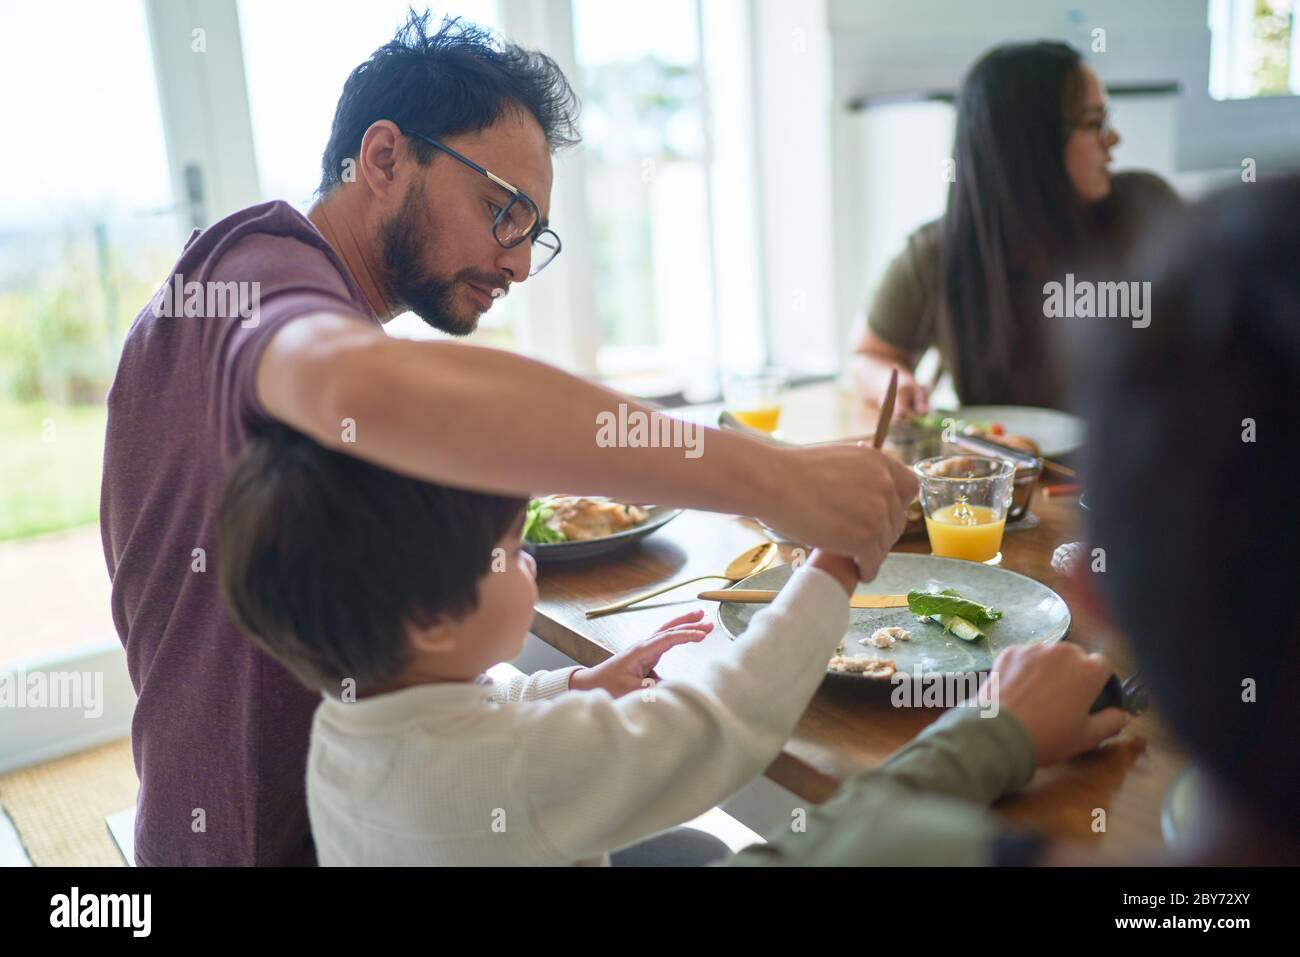 Father helping son cut food at dinner table Stock Photo